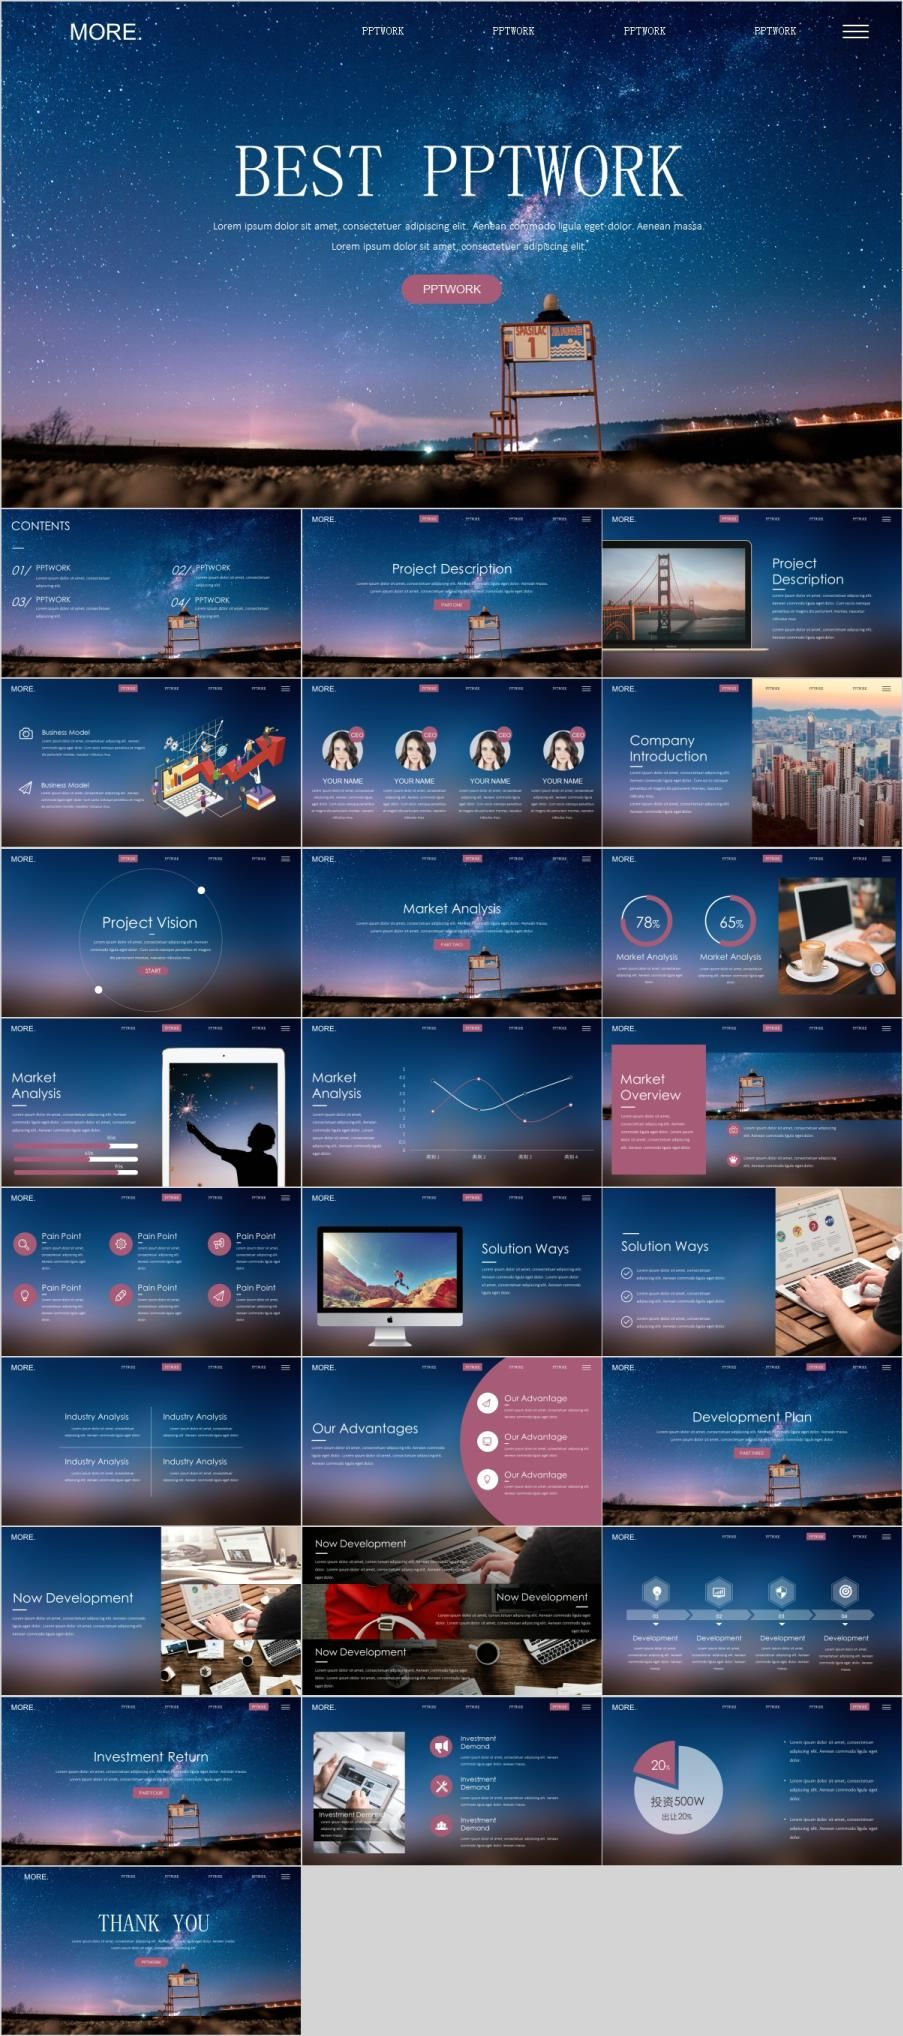 Ios Design Report Powerpoint Template Creative Infographic Ideas